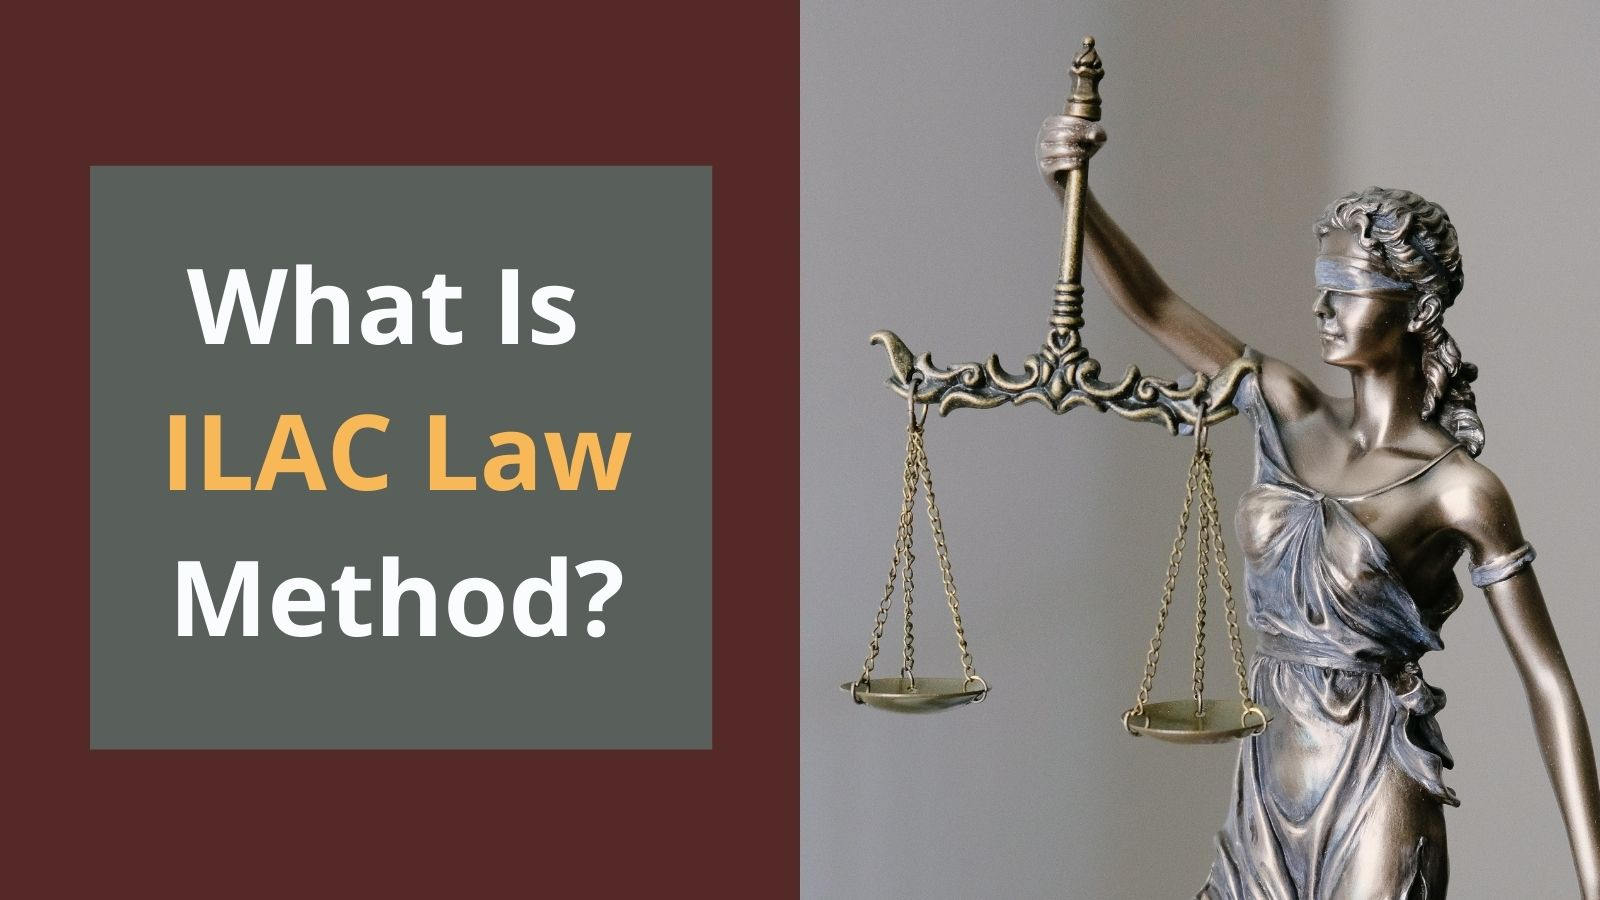 What Is ILAC Method?